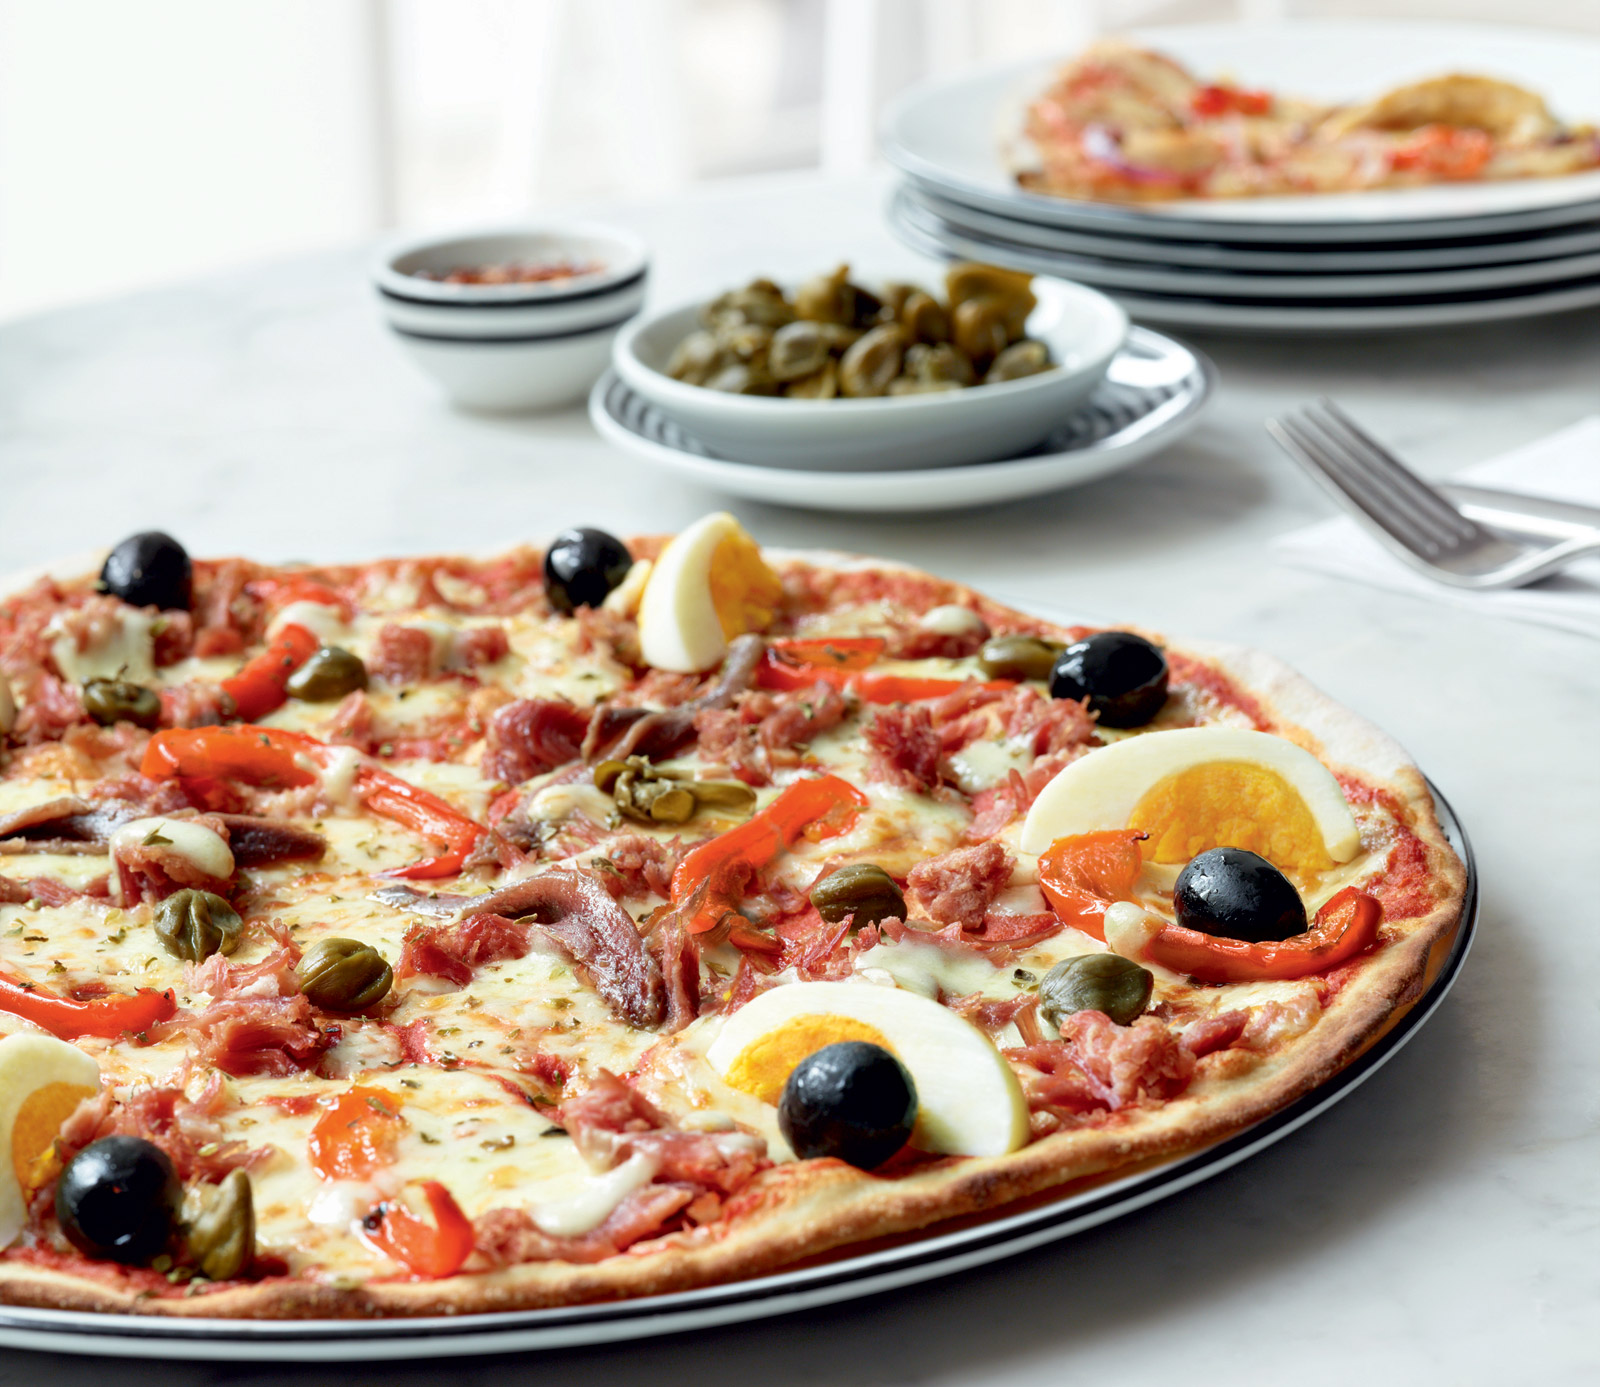 PizzaExpress Cheshire Oaks - Cheshire